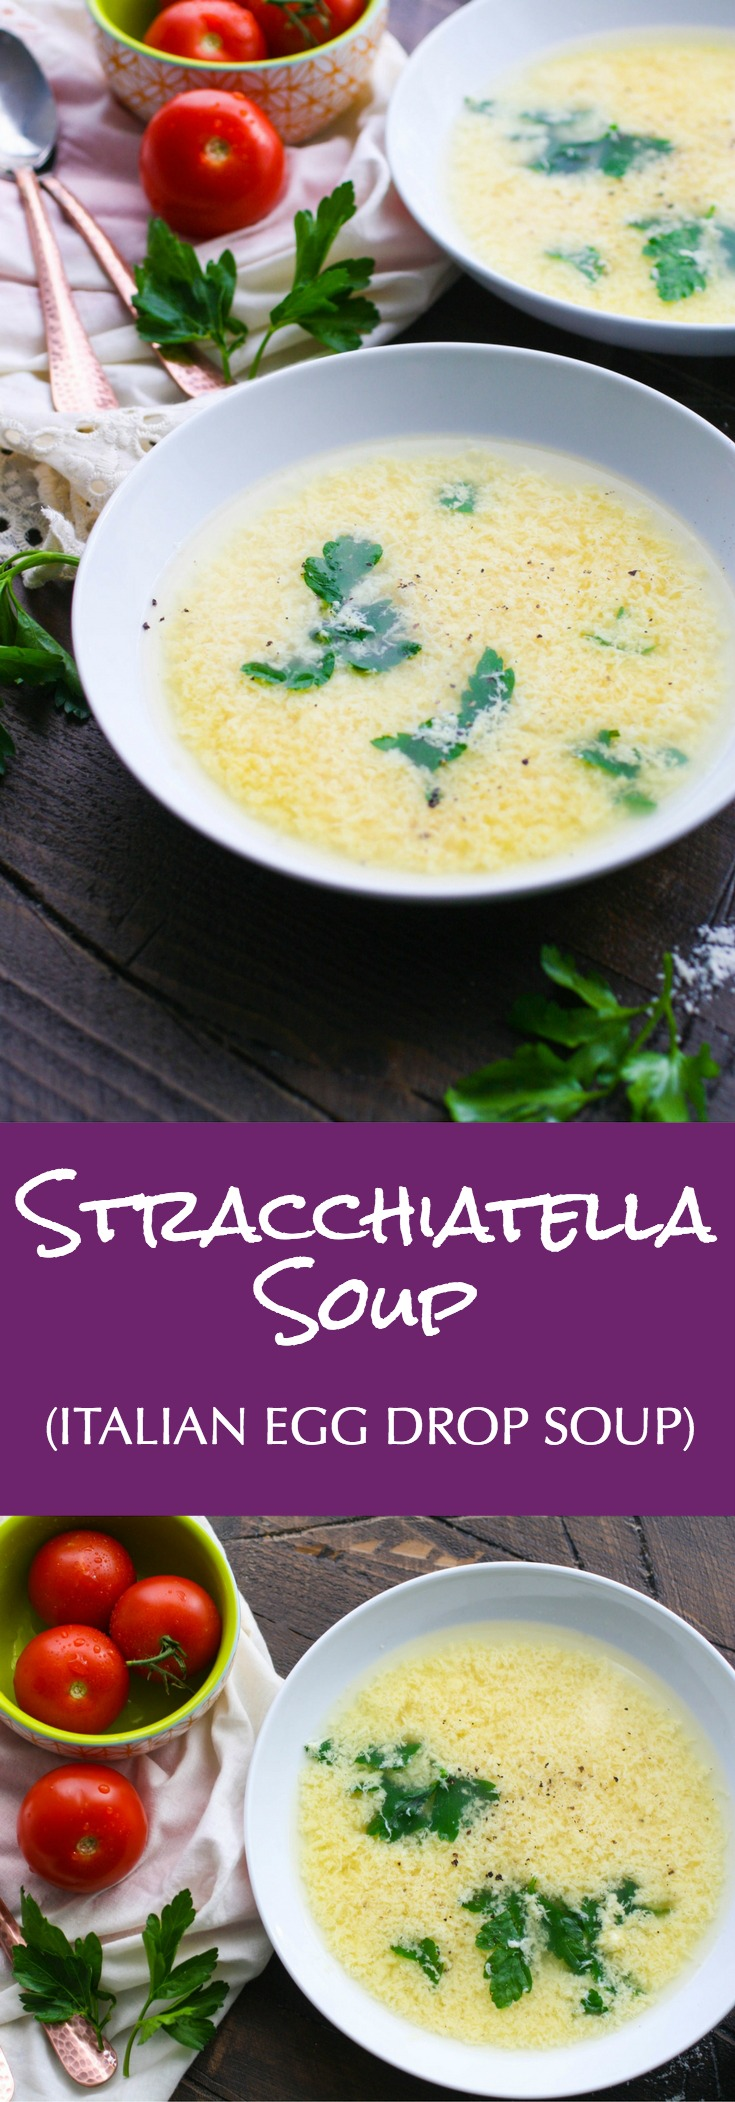 Stracchiatella soup (Italian egg drop soup) is a treat when the weather is cold out. You'll love stracchiatella soup for its simplicity.